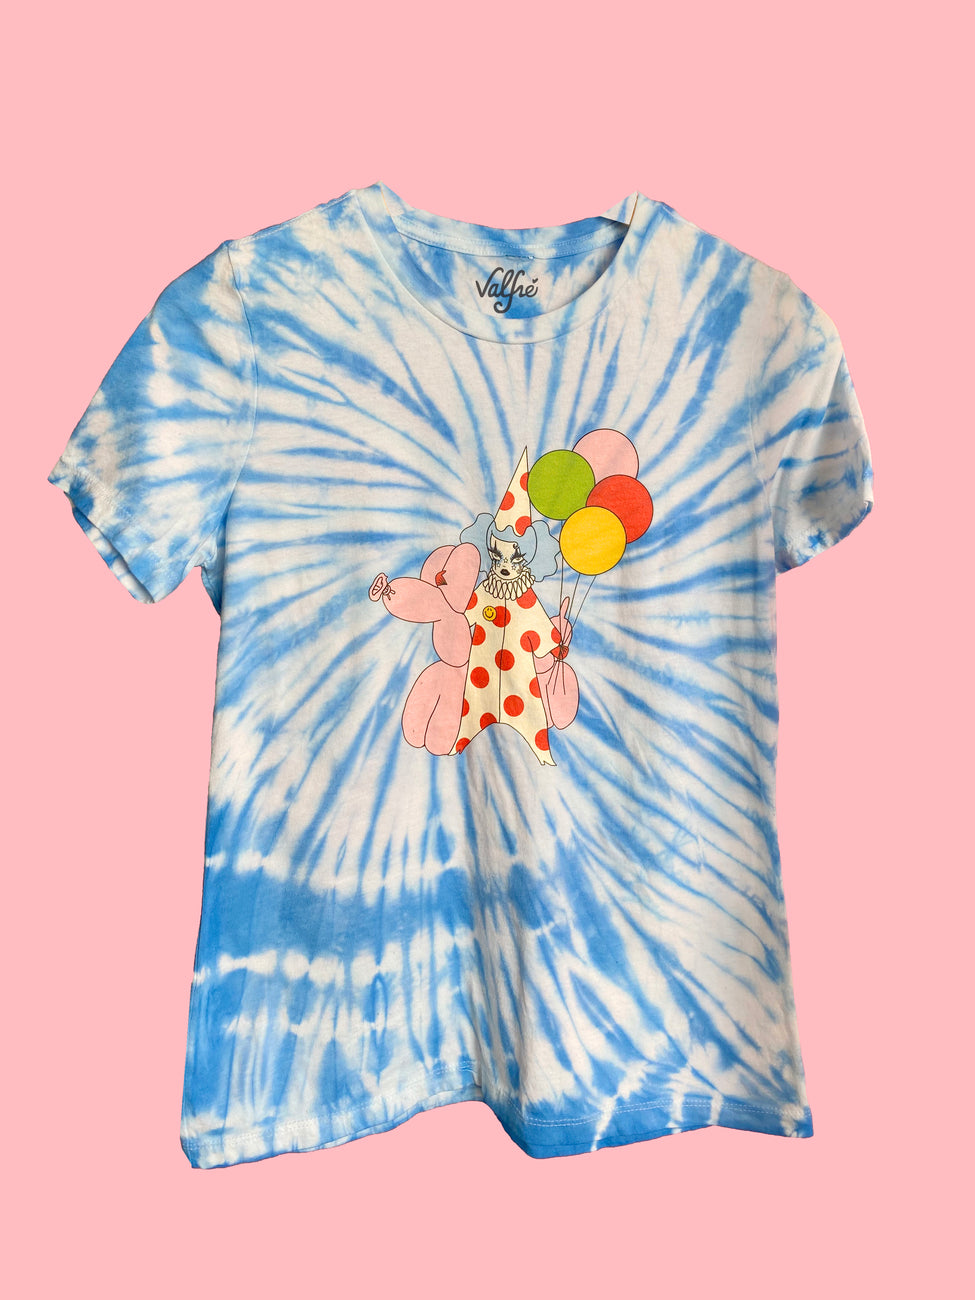 Down To Clown Blue Tie Dye Tee